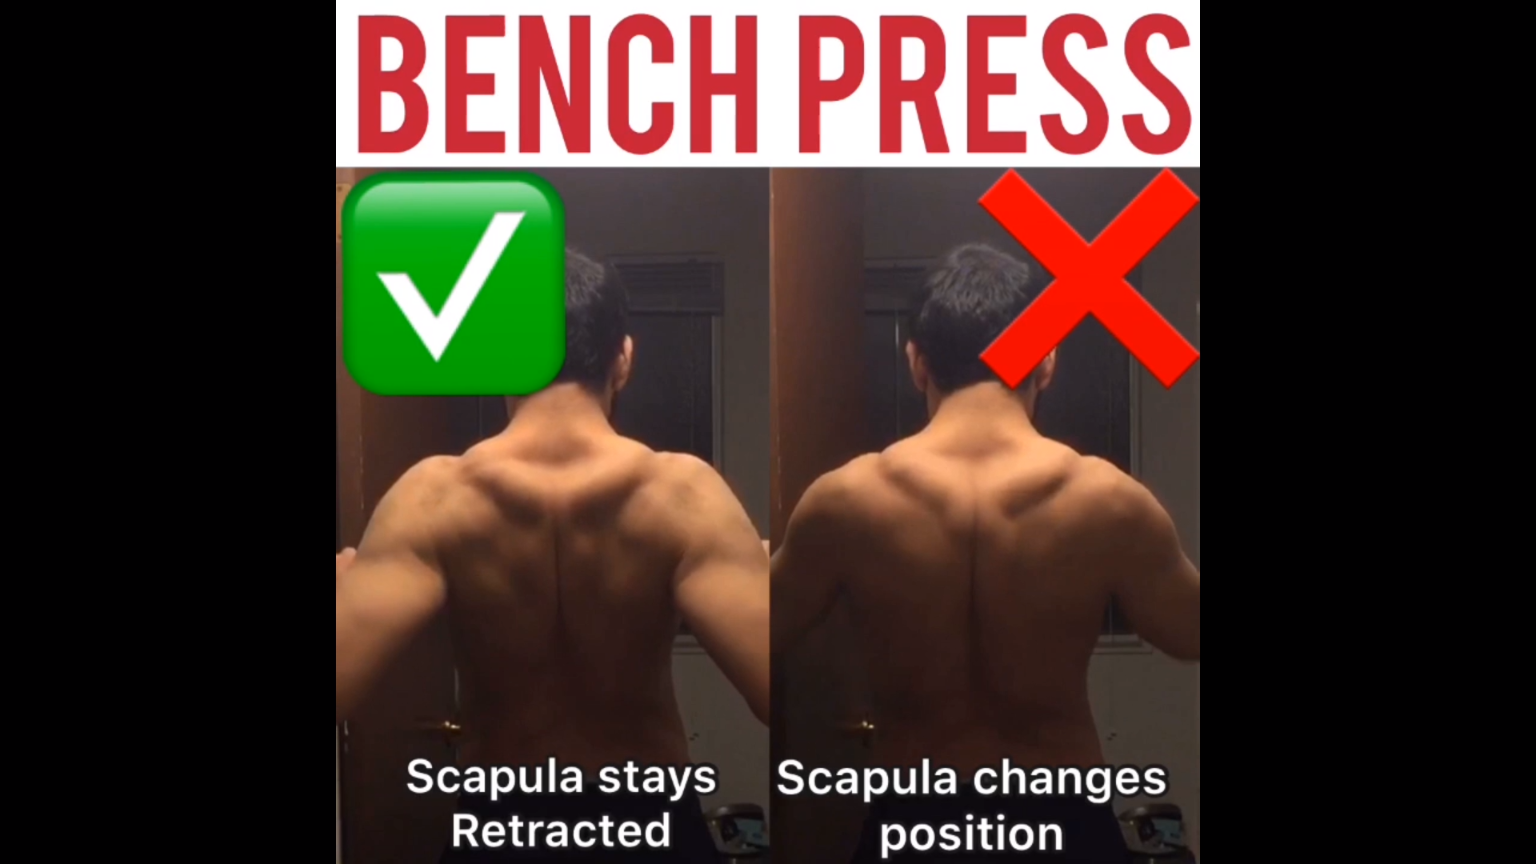 How to properly press